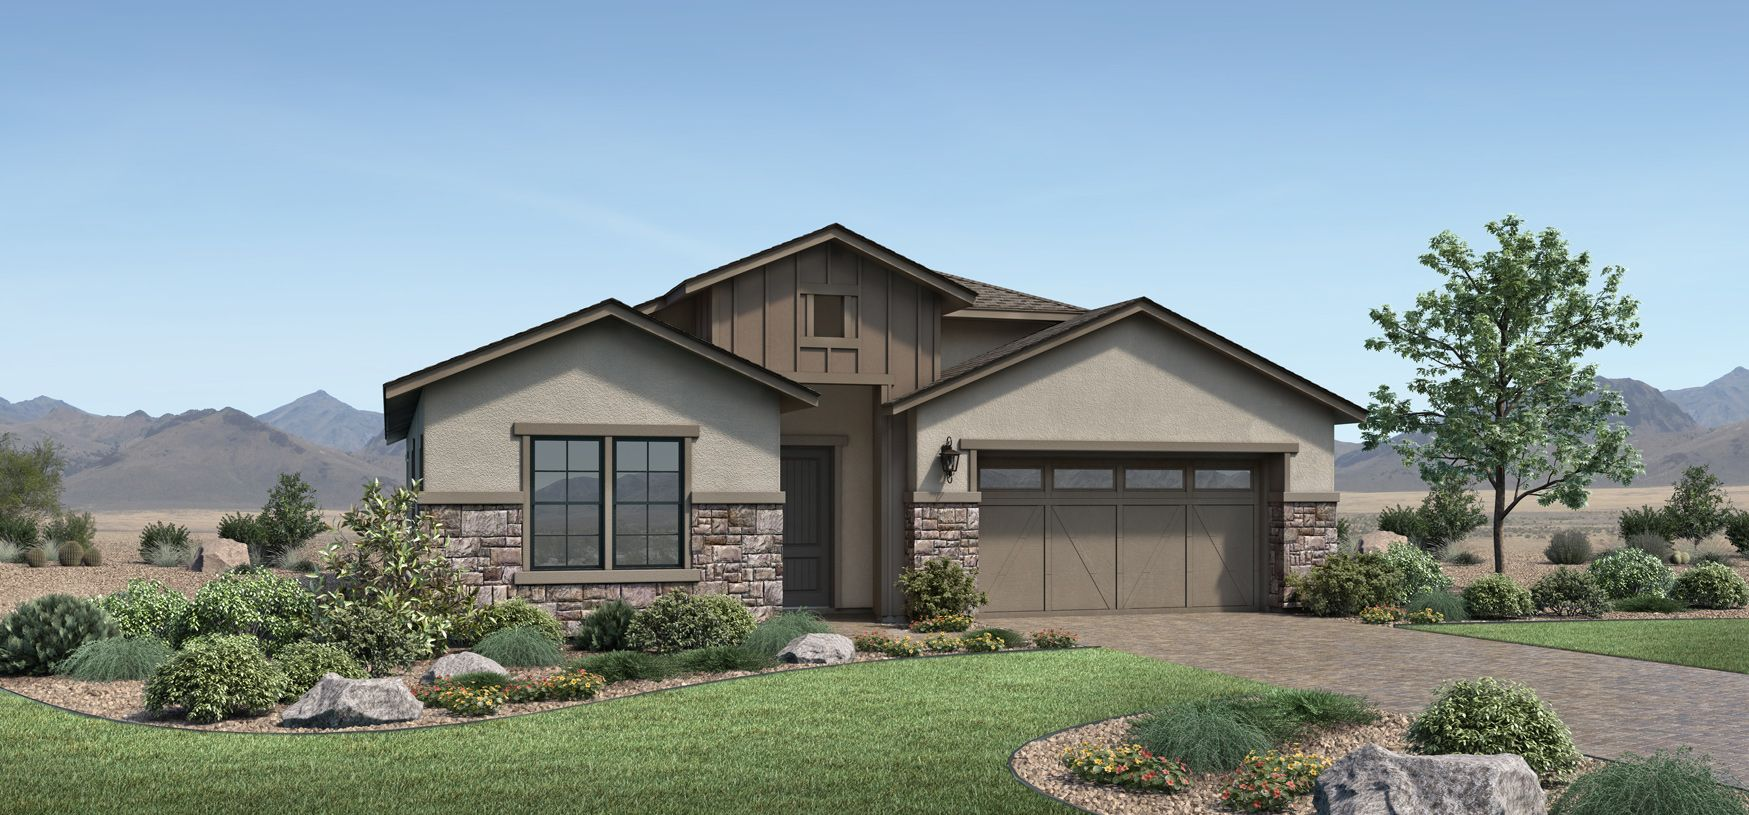 Exterior featured in the Aberdeen By Toll Brothers in Reno, NV